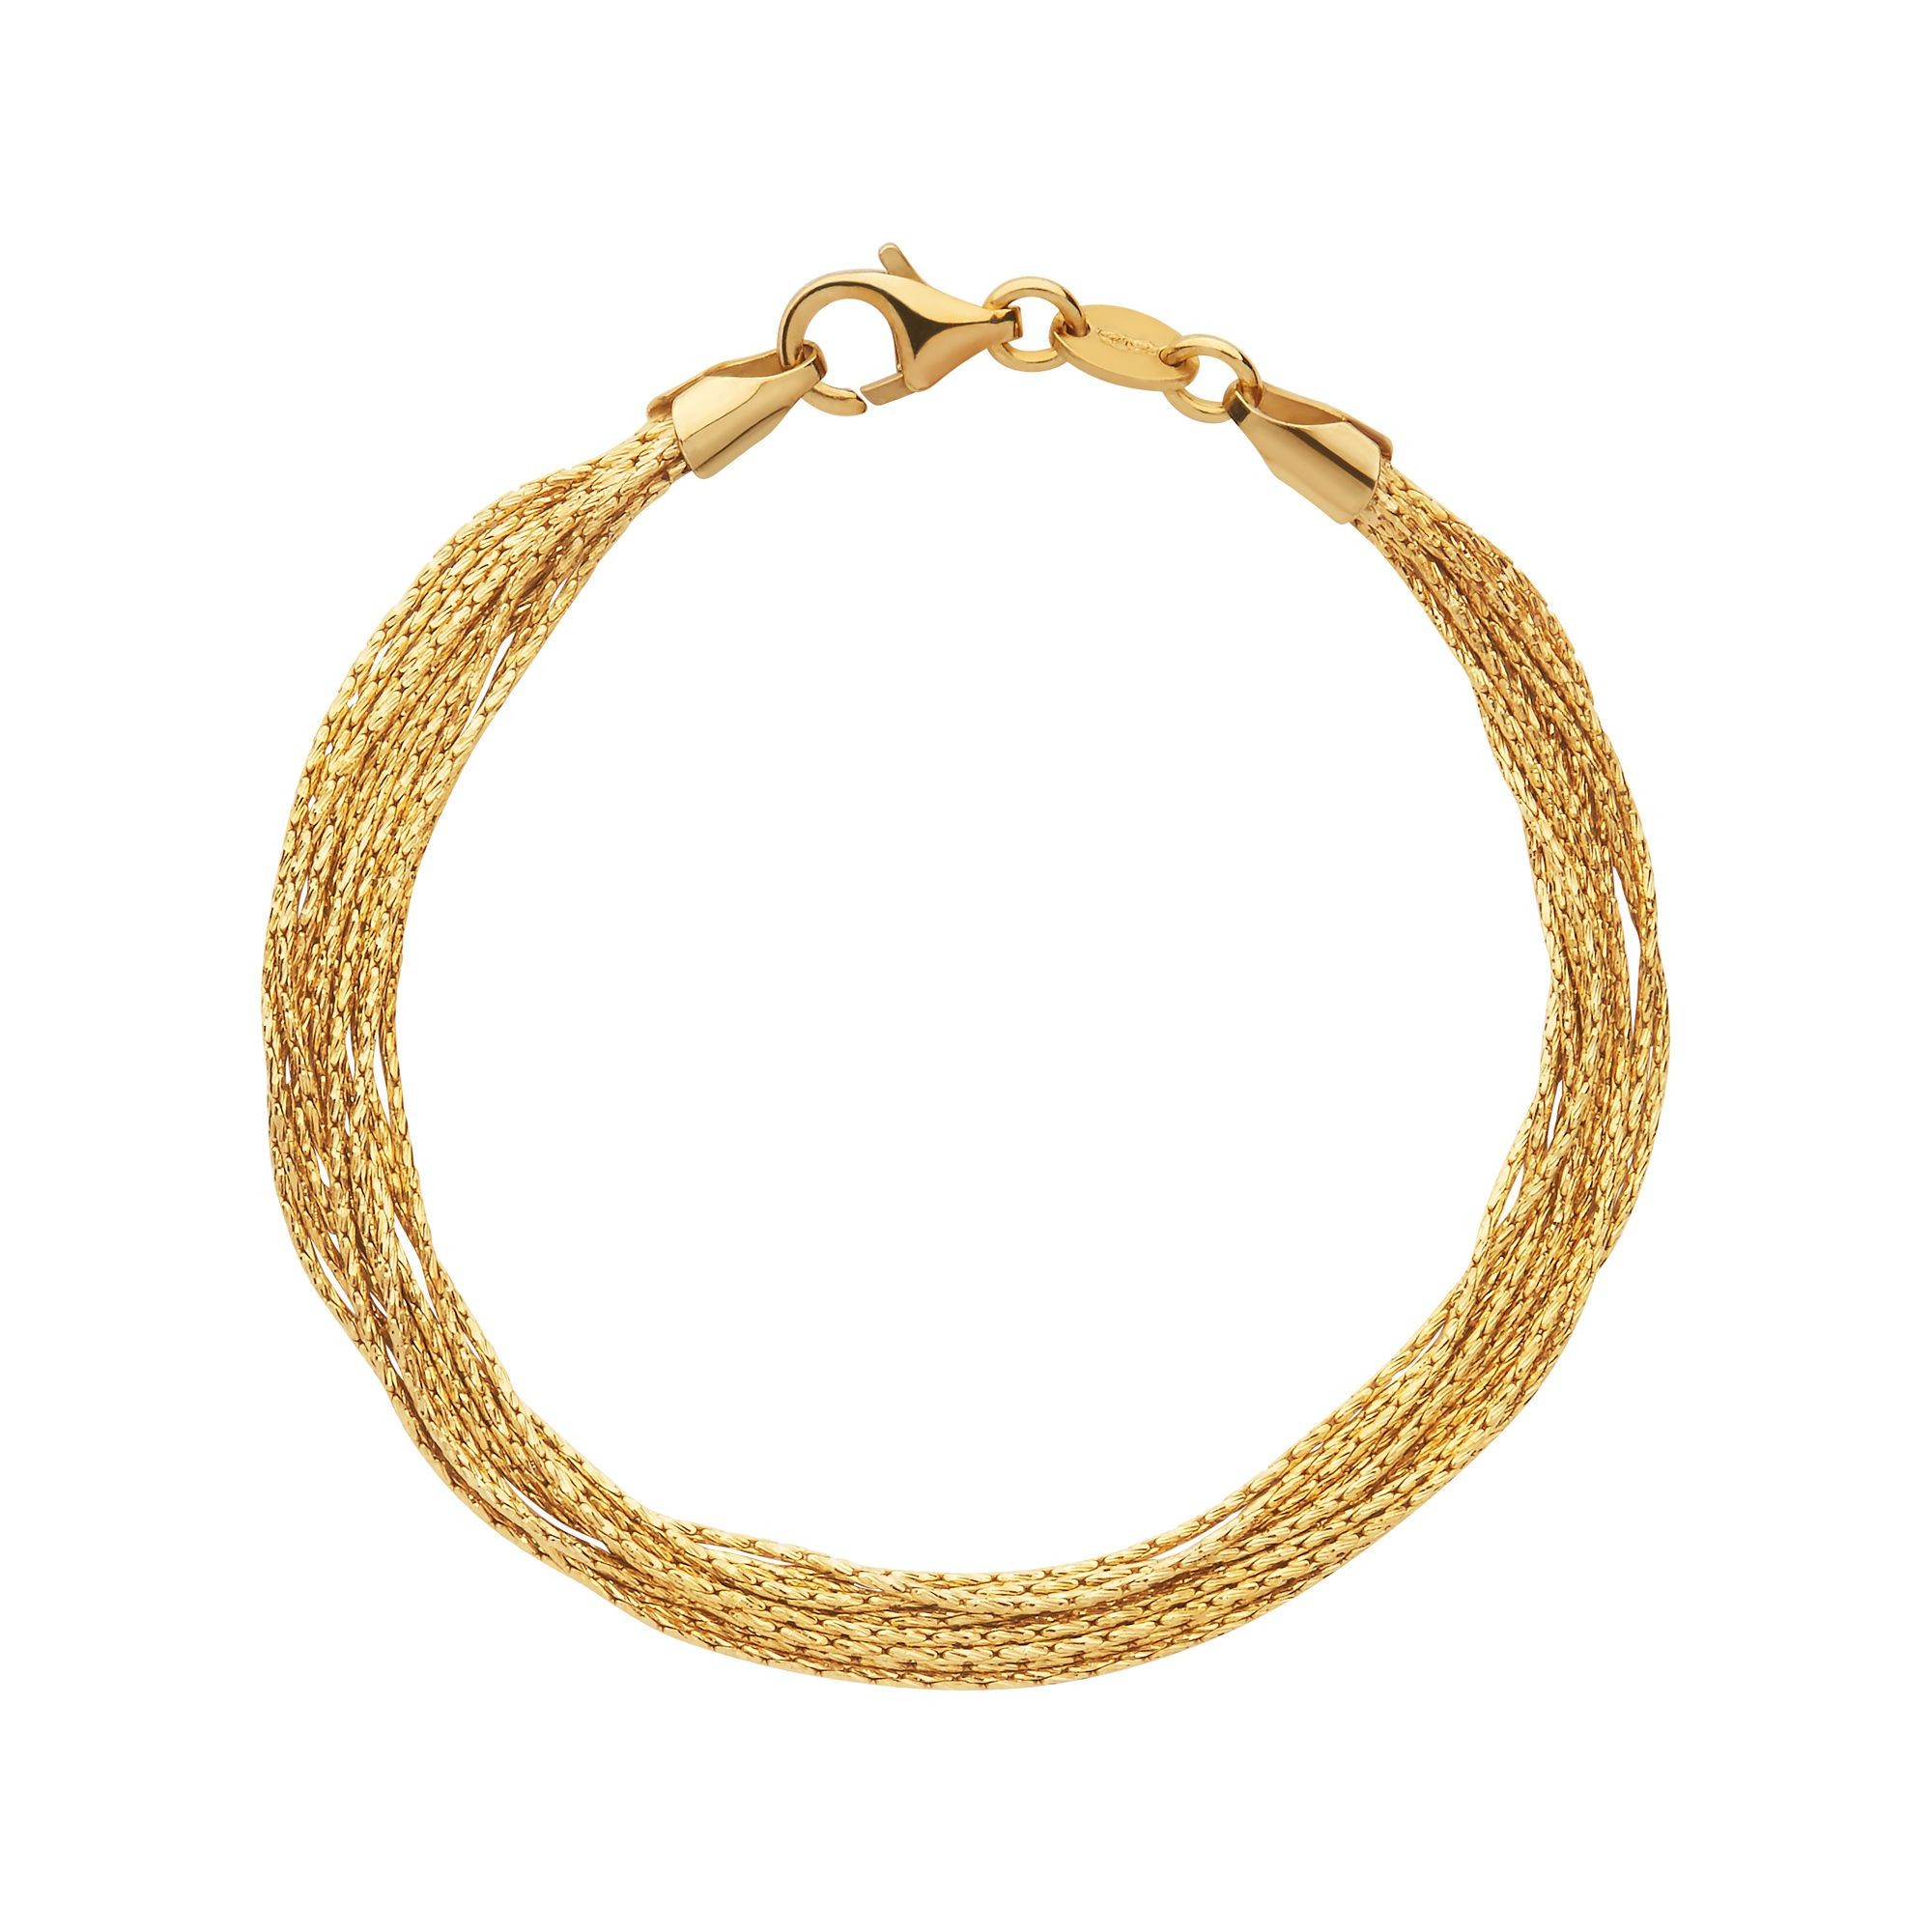 20+ Does london gold buy jewelry ideas